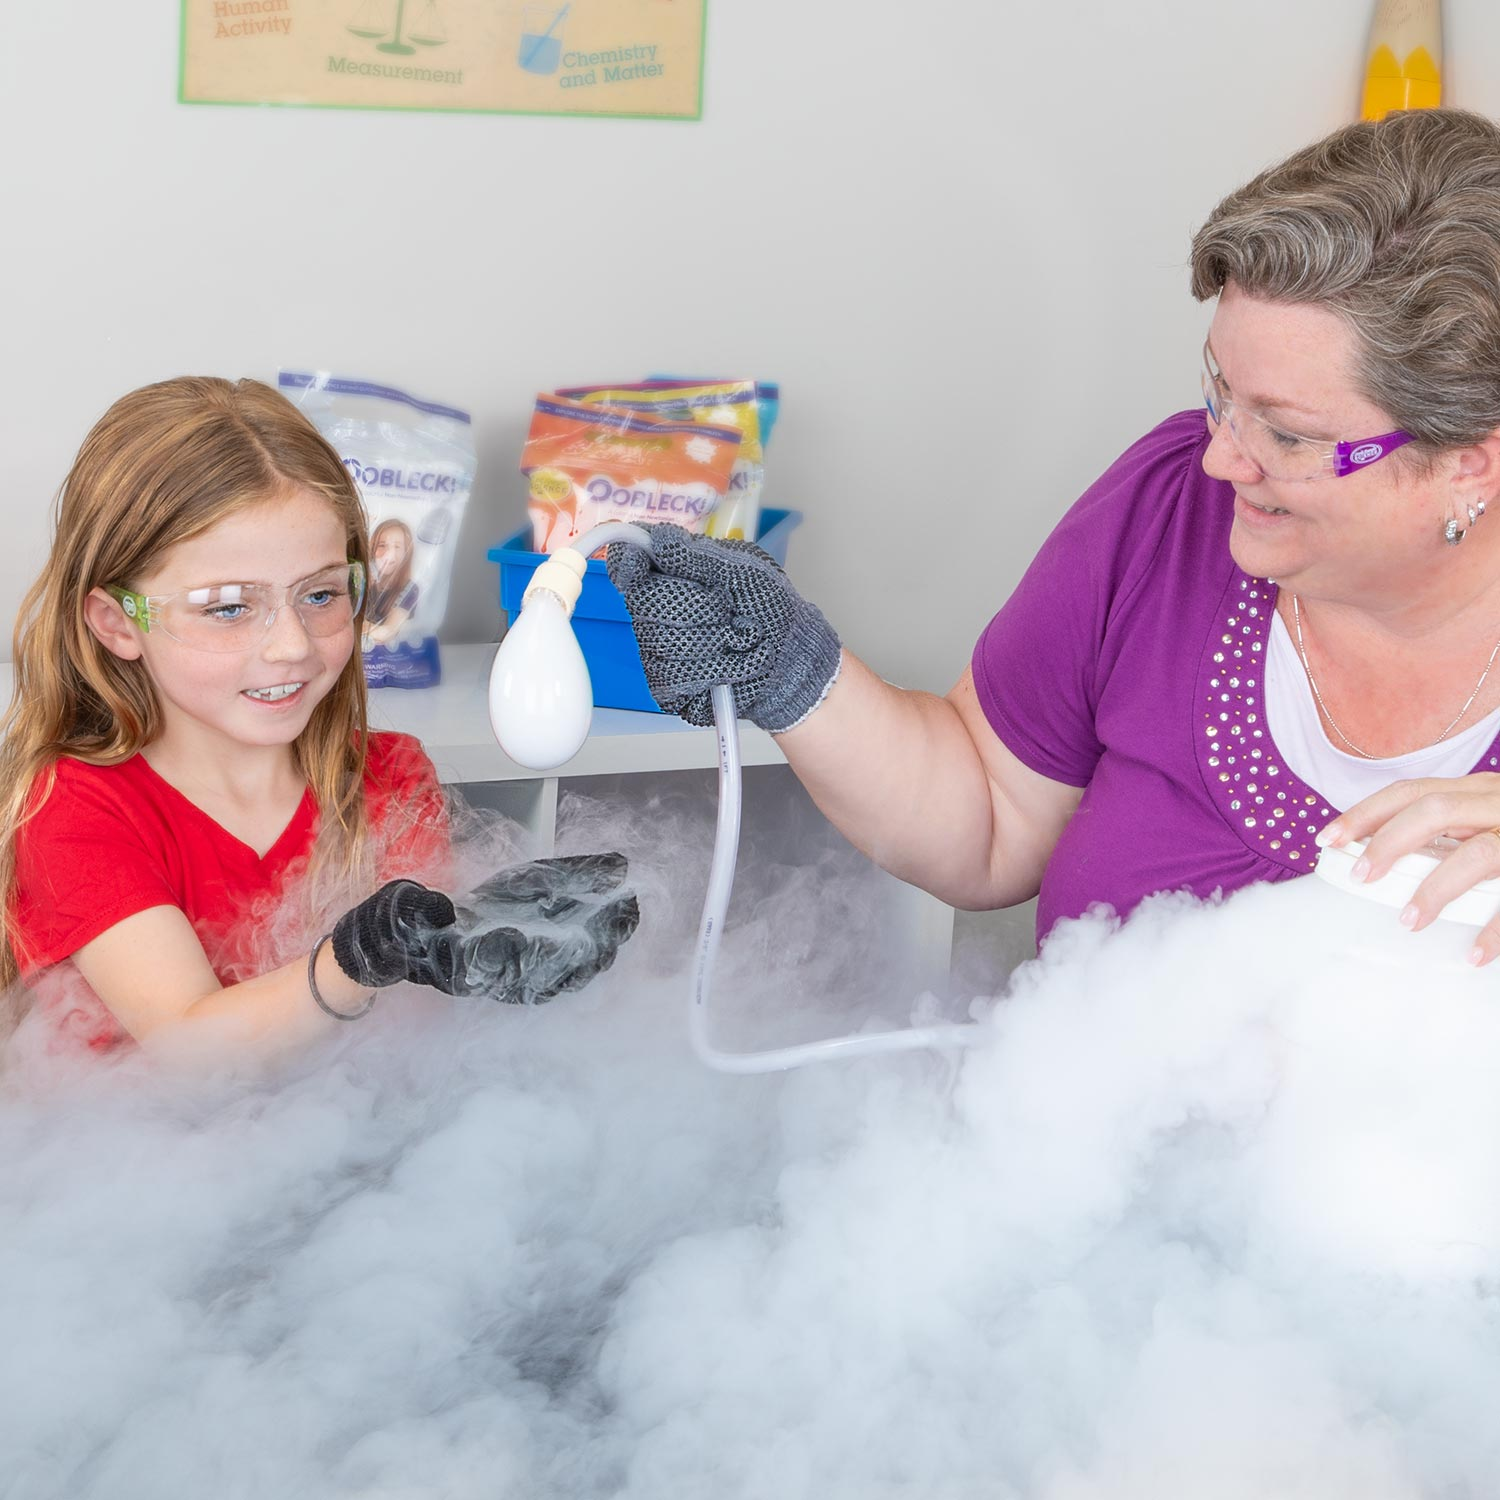 Boo Bubbles - Dry Ice Smoke-filled Bubbles